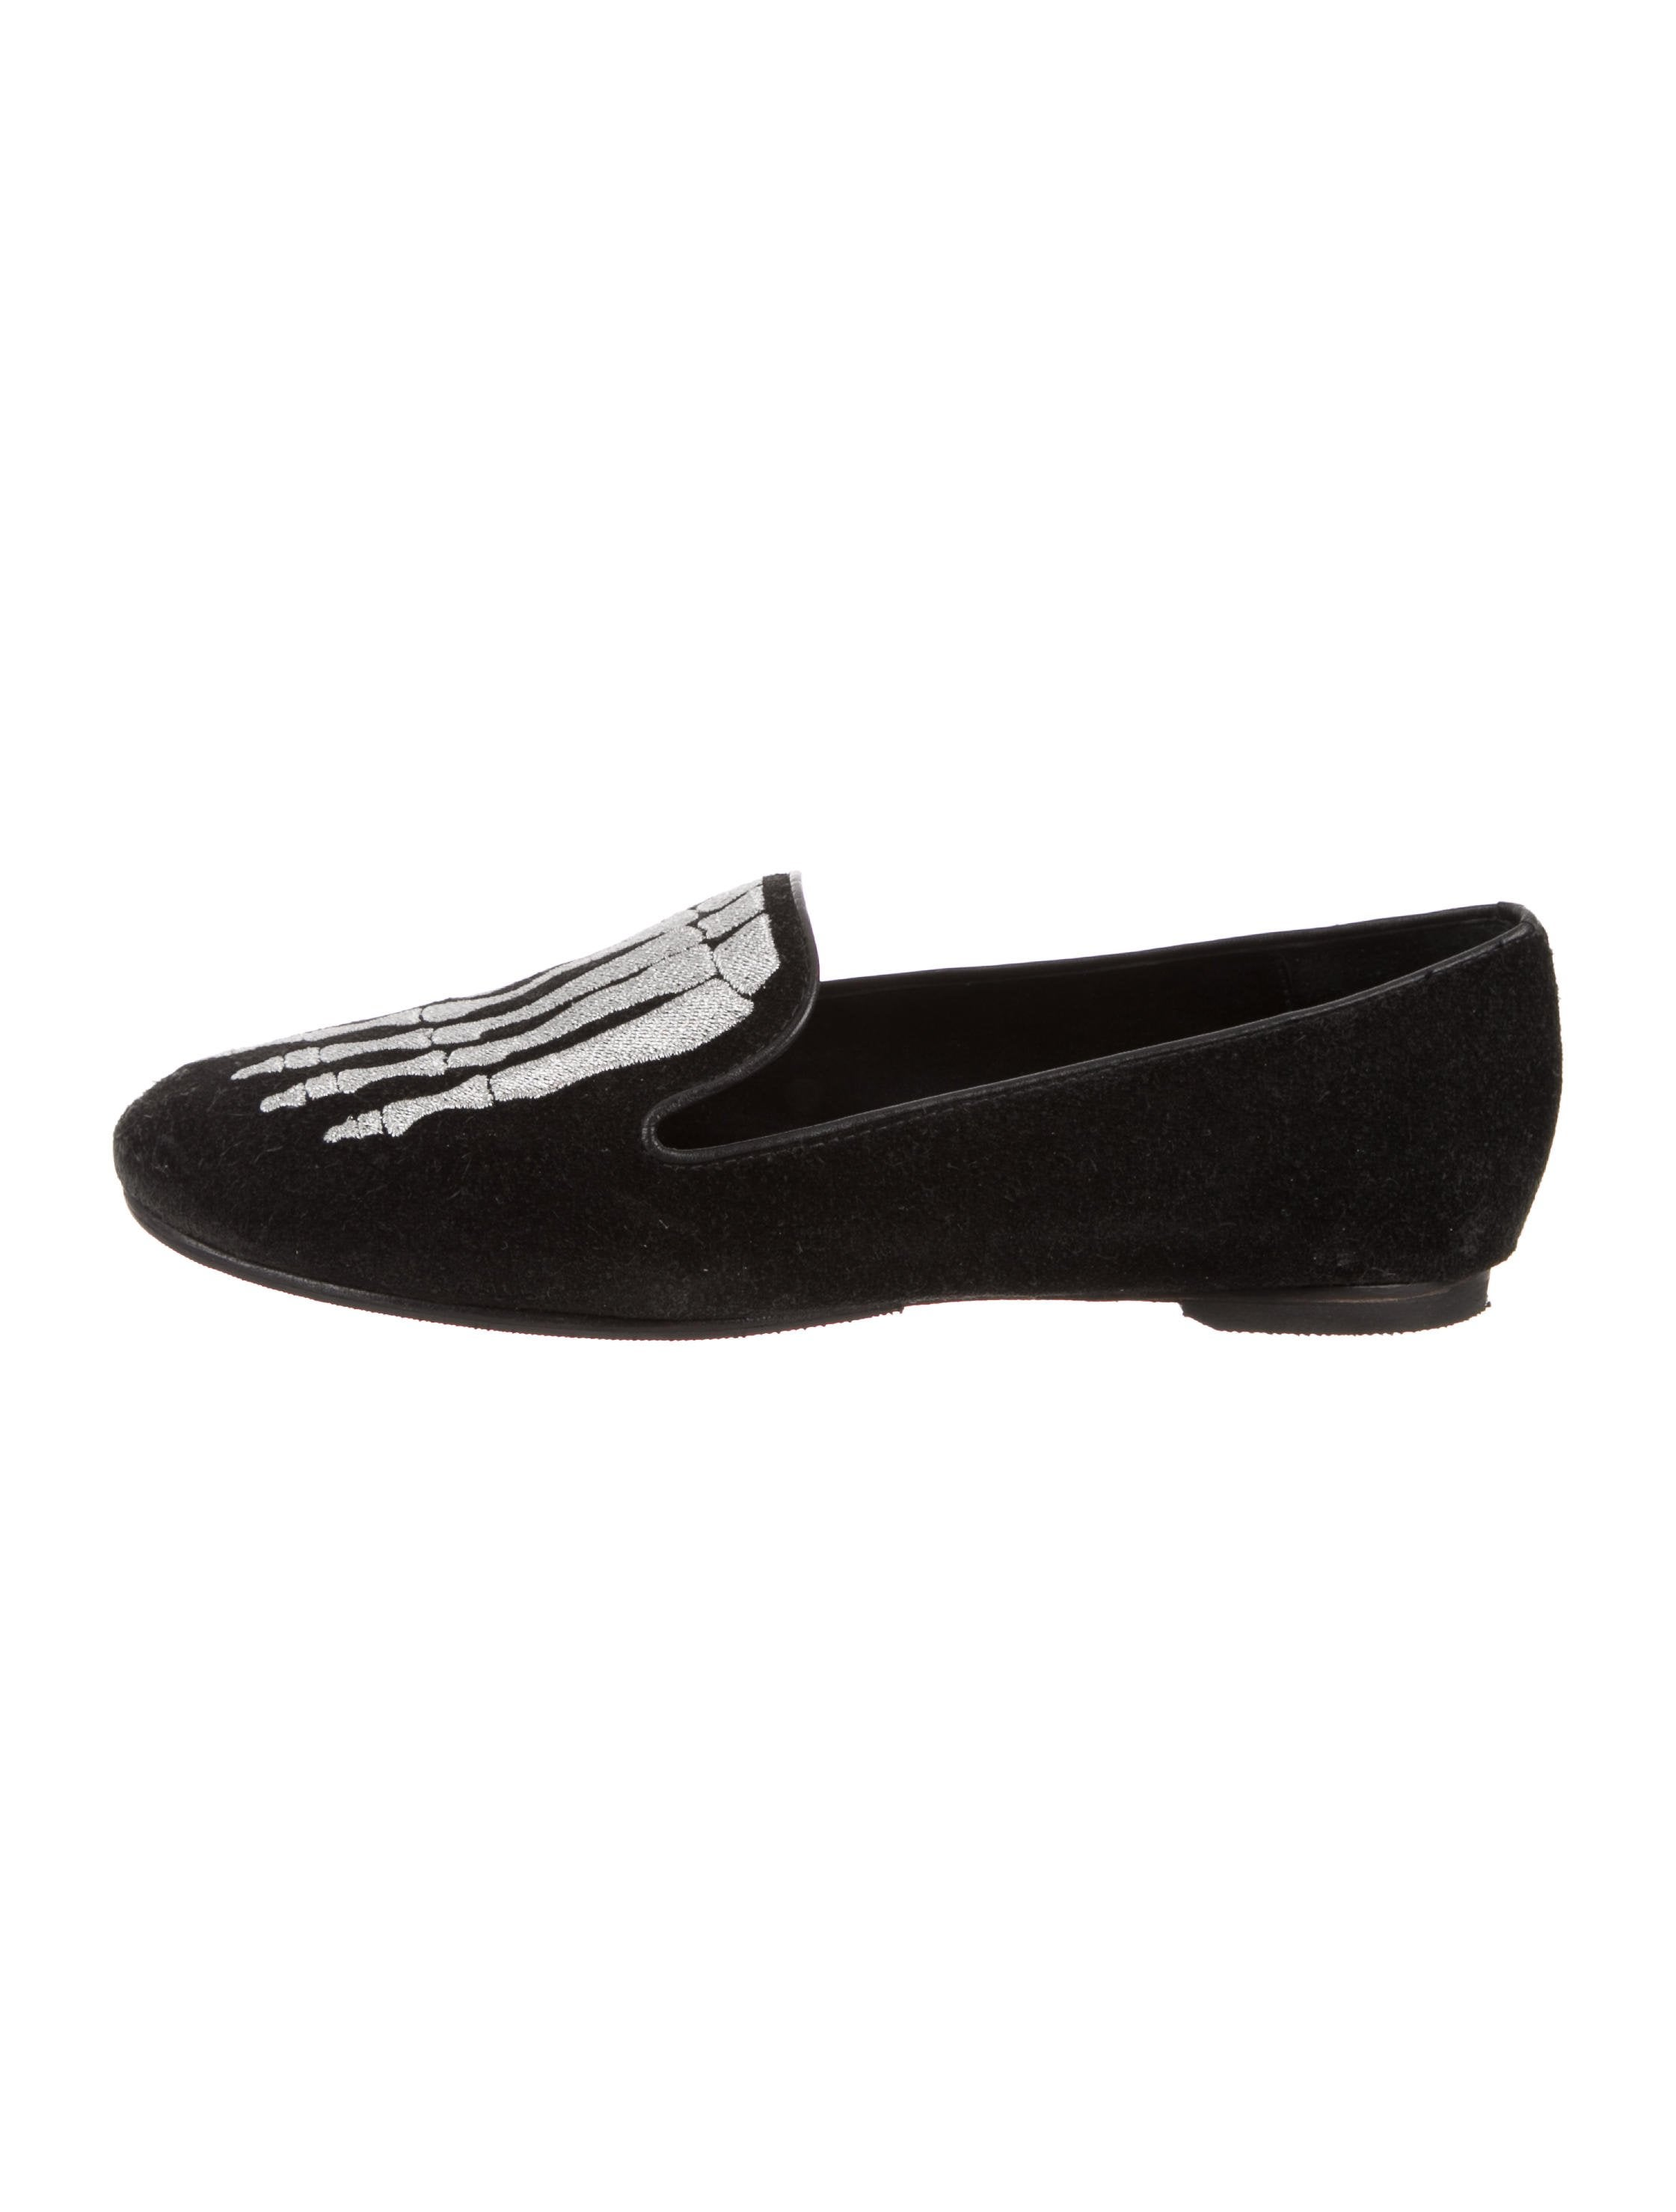 Mara & Mine Nicky Suede Slippers discount get authentic 7cPA11F